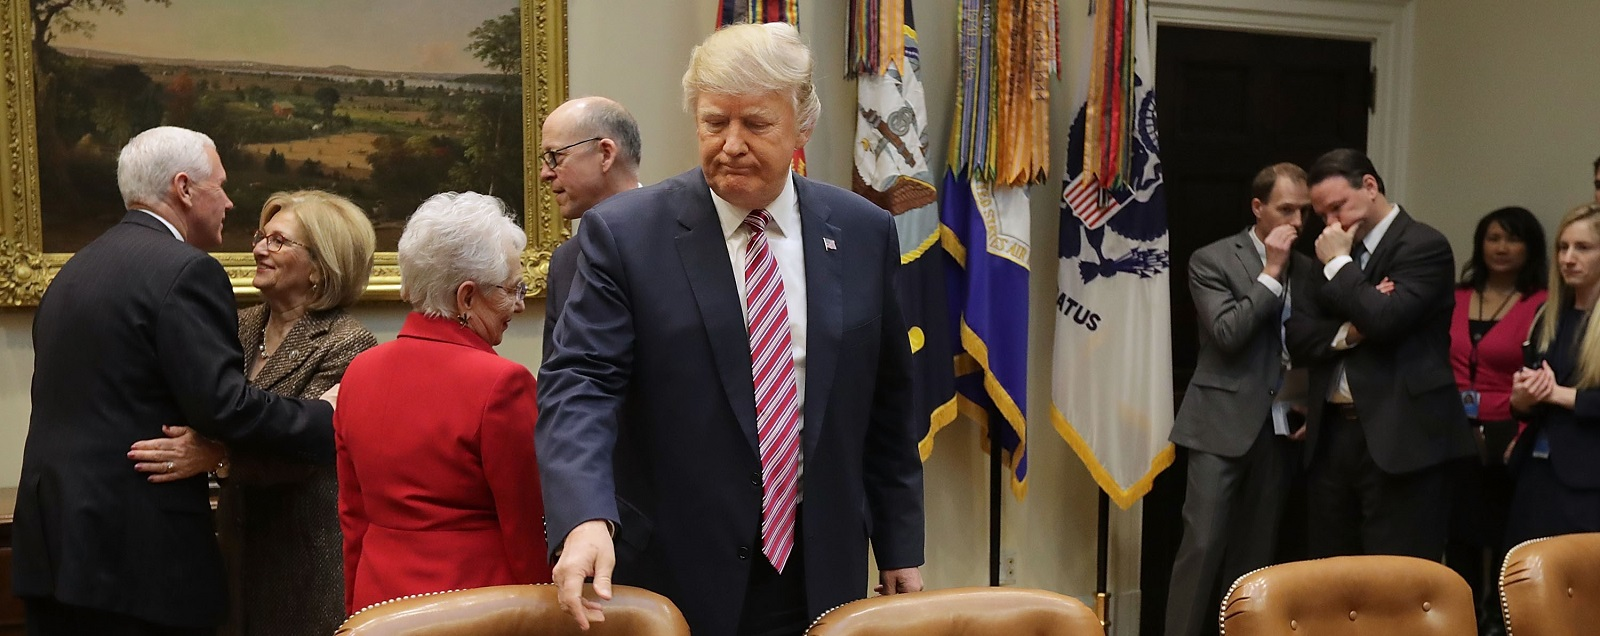 President Donald Trump meets with House of Representatives committee leaders on 10 March. Photo (Chip Somodevilla/Getty Images)